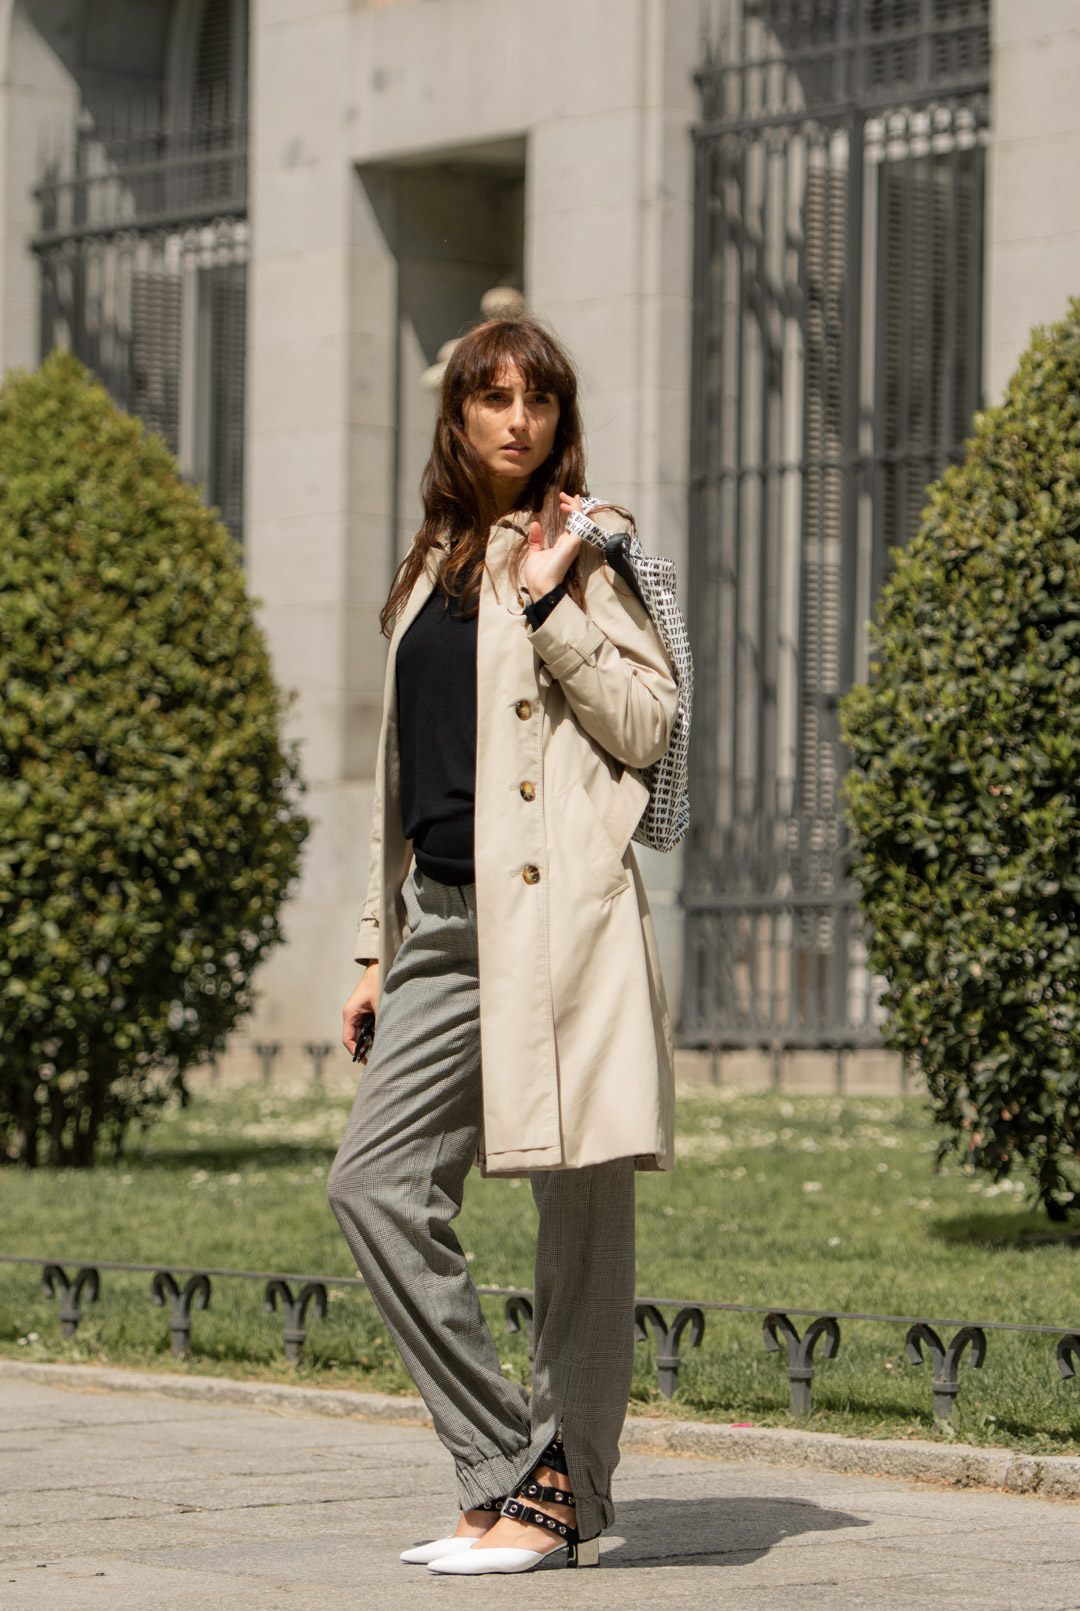 mayte-street-style-burberry-web-05